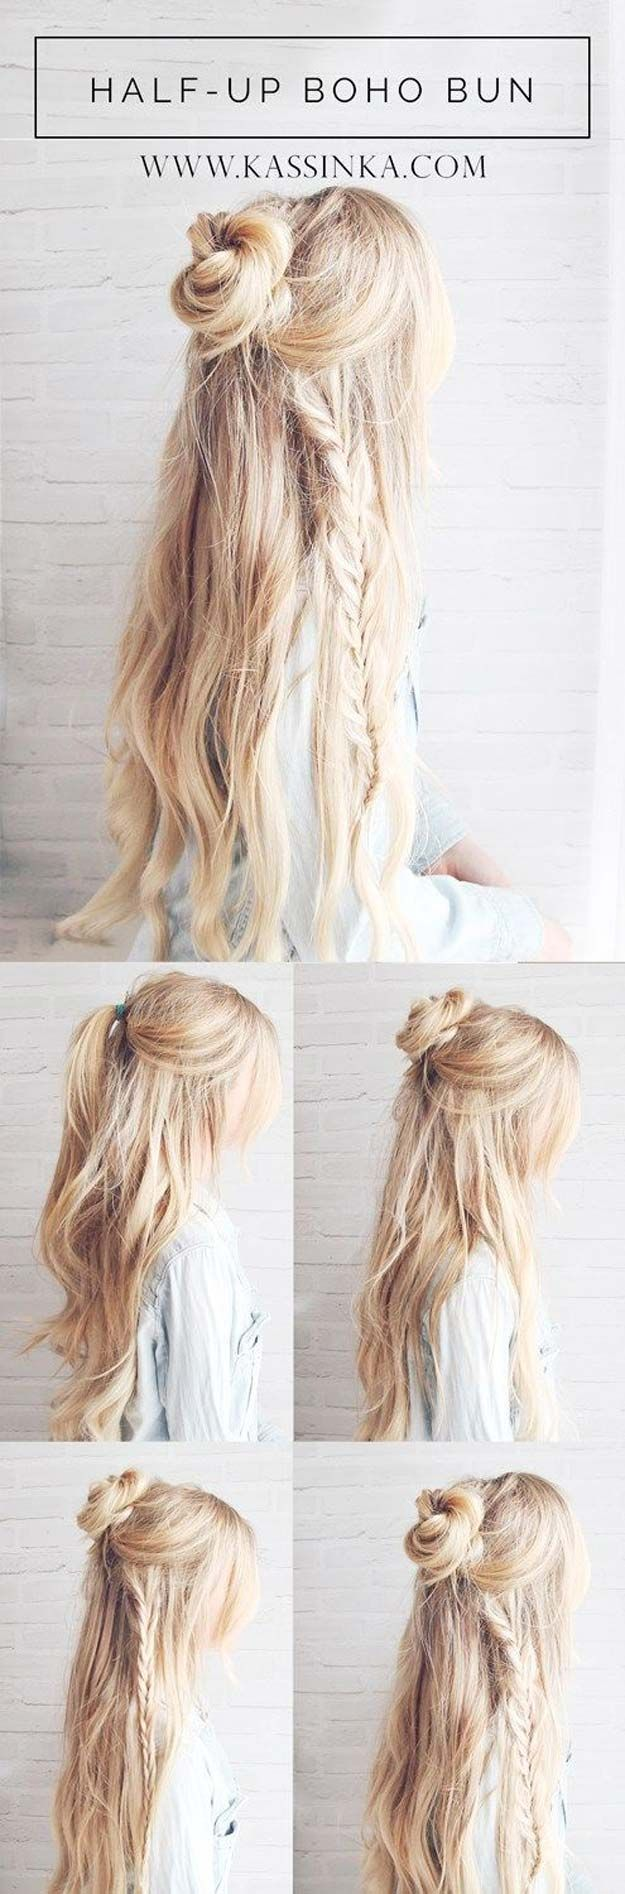 Best Hairstyles for Long Hair - Boho Braided Bun Hair - Step by Step Tutorials for Easy Curls, Updo, Half Up, Braids and Lazy Girl Looks. Prom Ideas, Special Occasion Hair and Braiding Instructions for Teens, Teenagers and Adults, Women and Girls diyprojectsfortee...